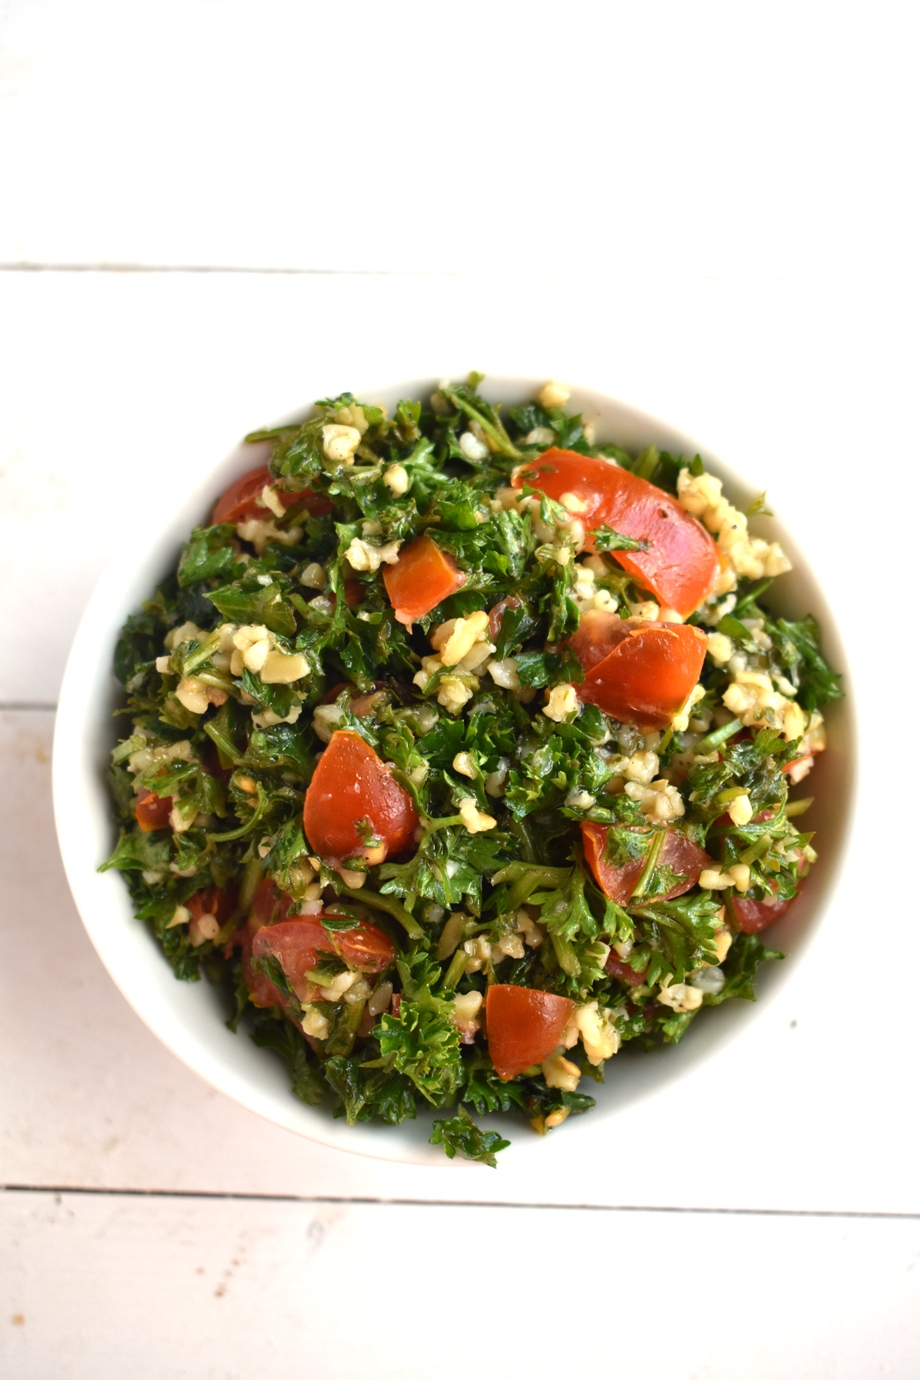 Healthy tabbouleh salad